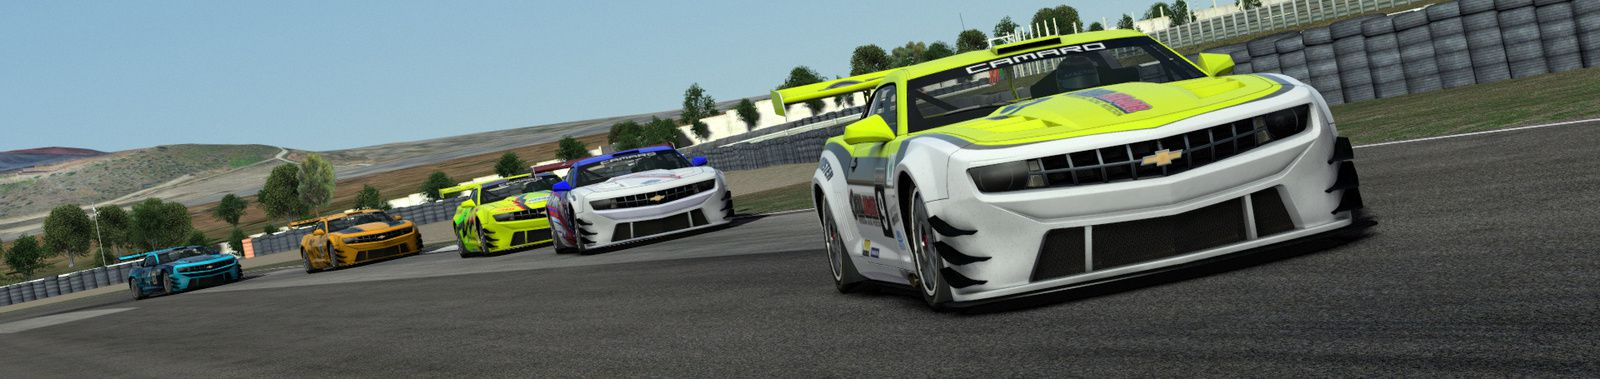 rFactor 2 : Chevrolet Camaro GT3 1.6 disponible !